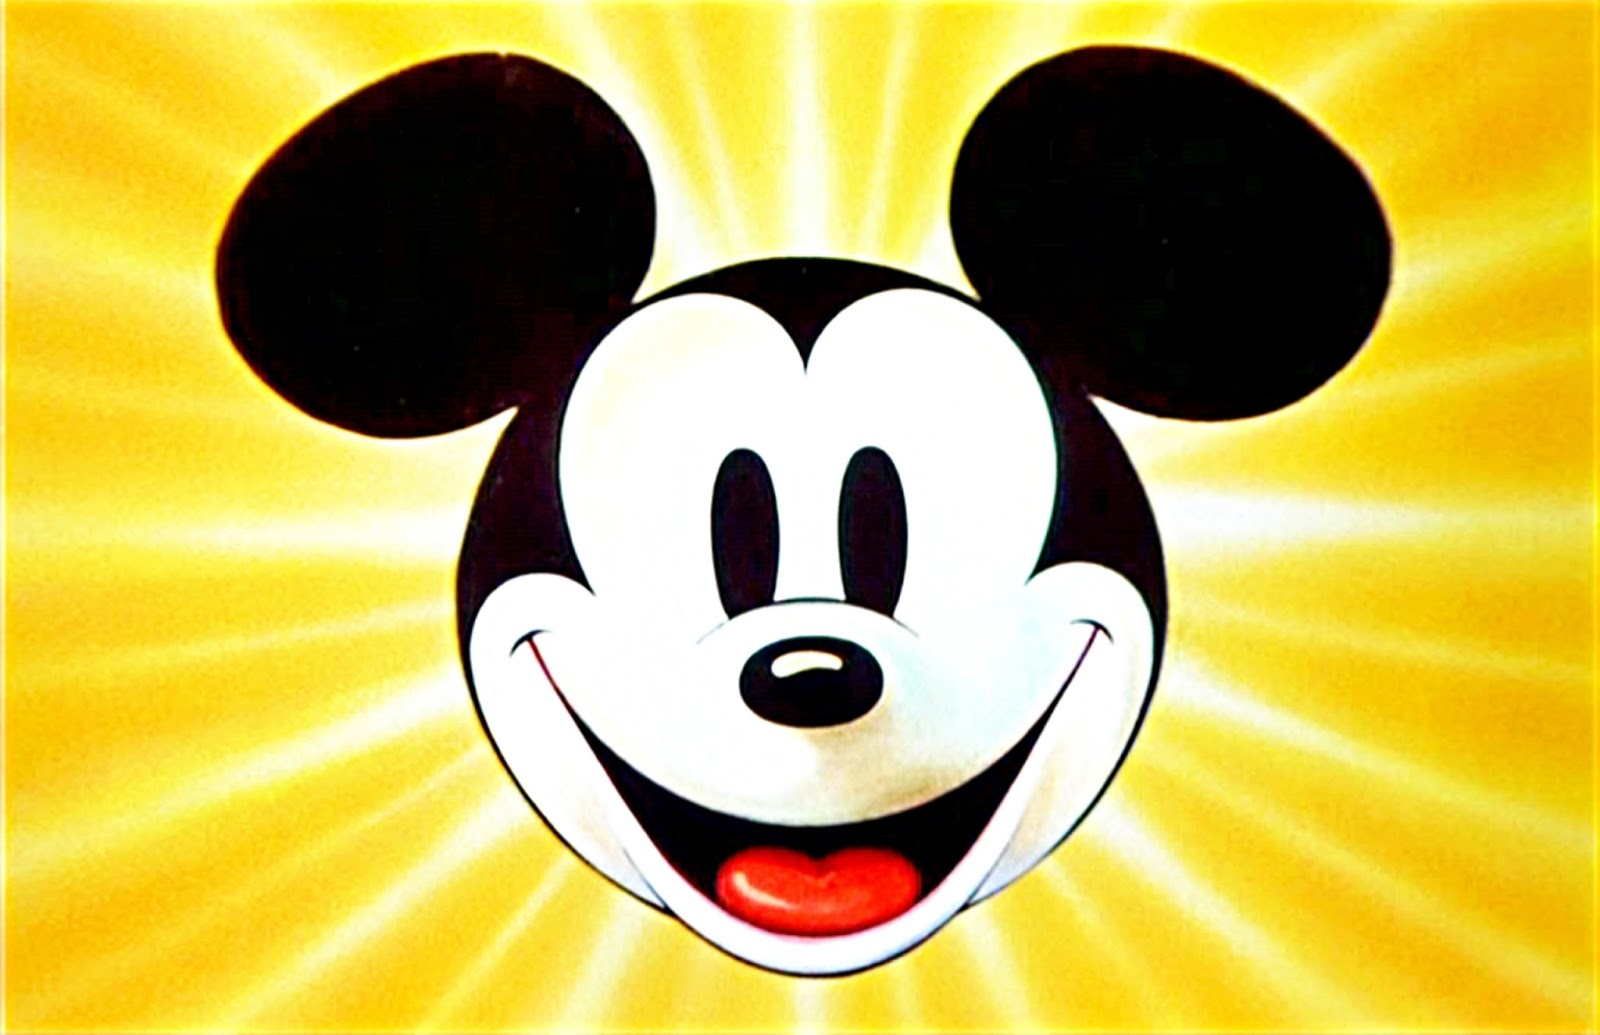 Judge Look here Mickey Mouse Jokes of the day 56327